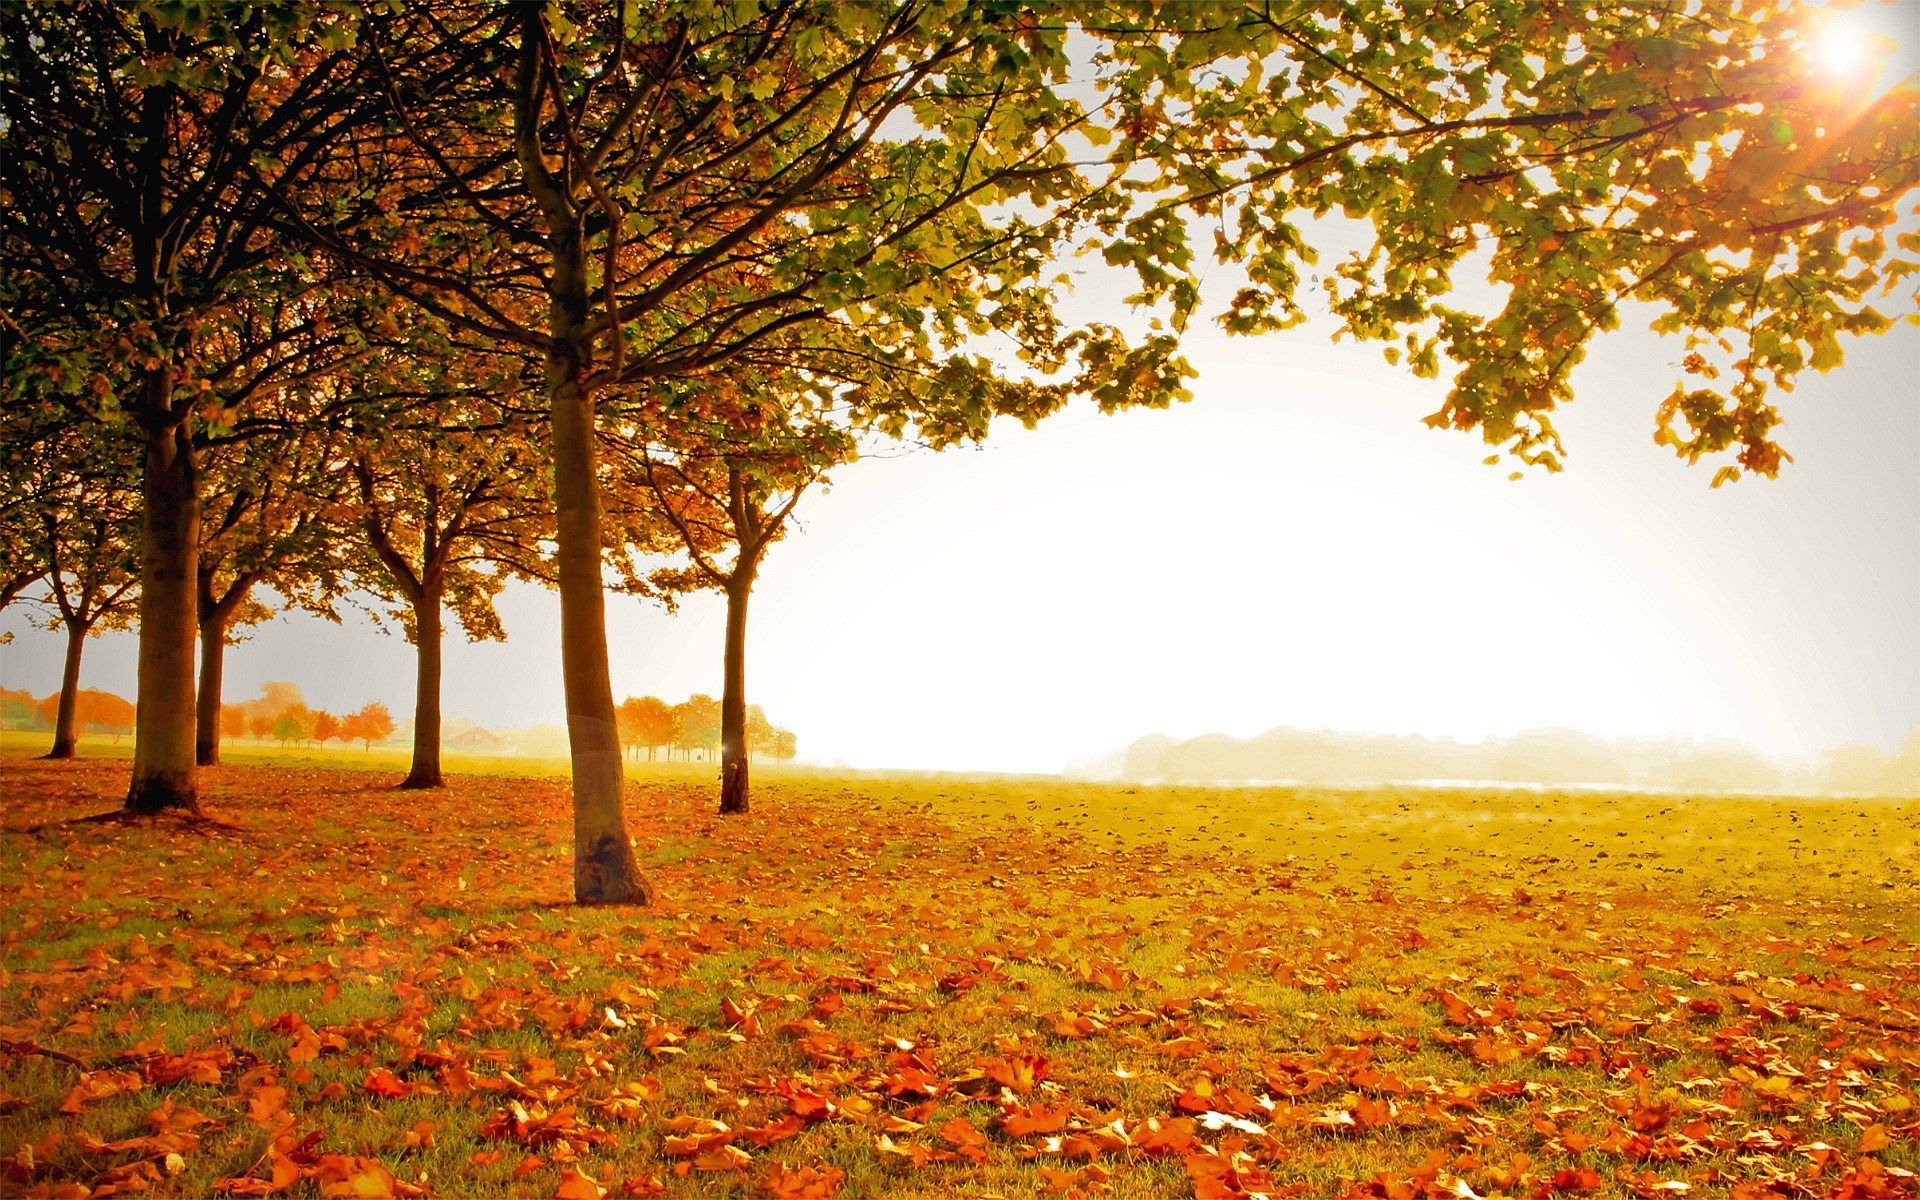 Fall High Resolution Desktop Backgrounds Autumn Landscape Fall Scenery Pictures Scenery Wallpaper